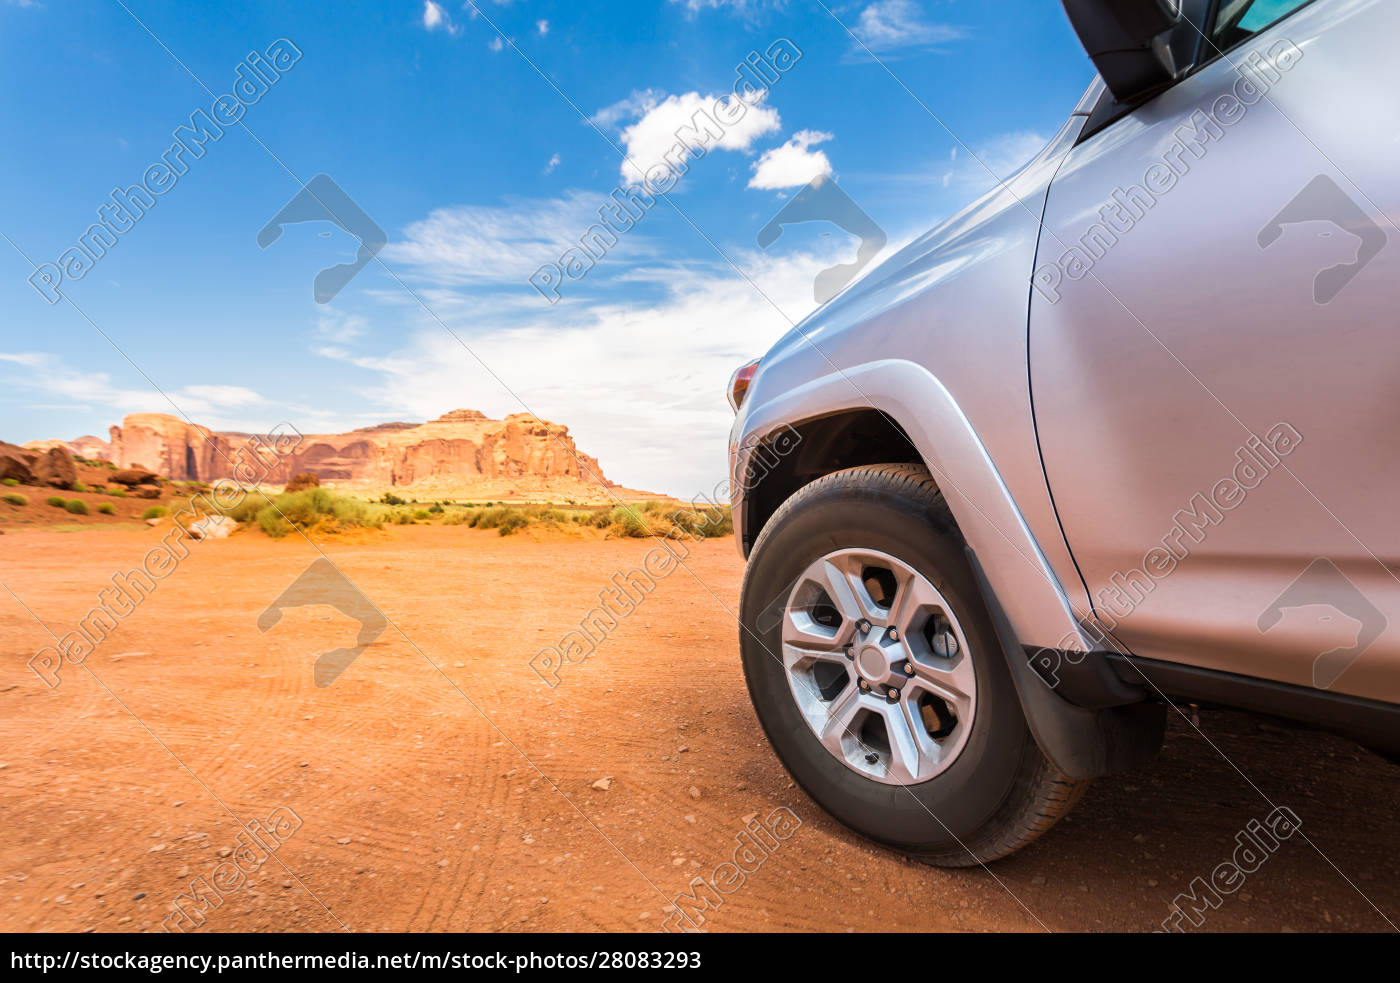 truck, in, desert, with, mountains, on - 28083293